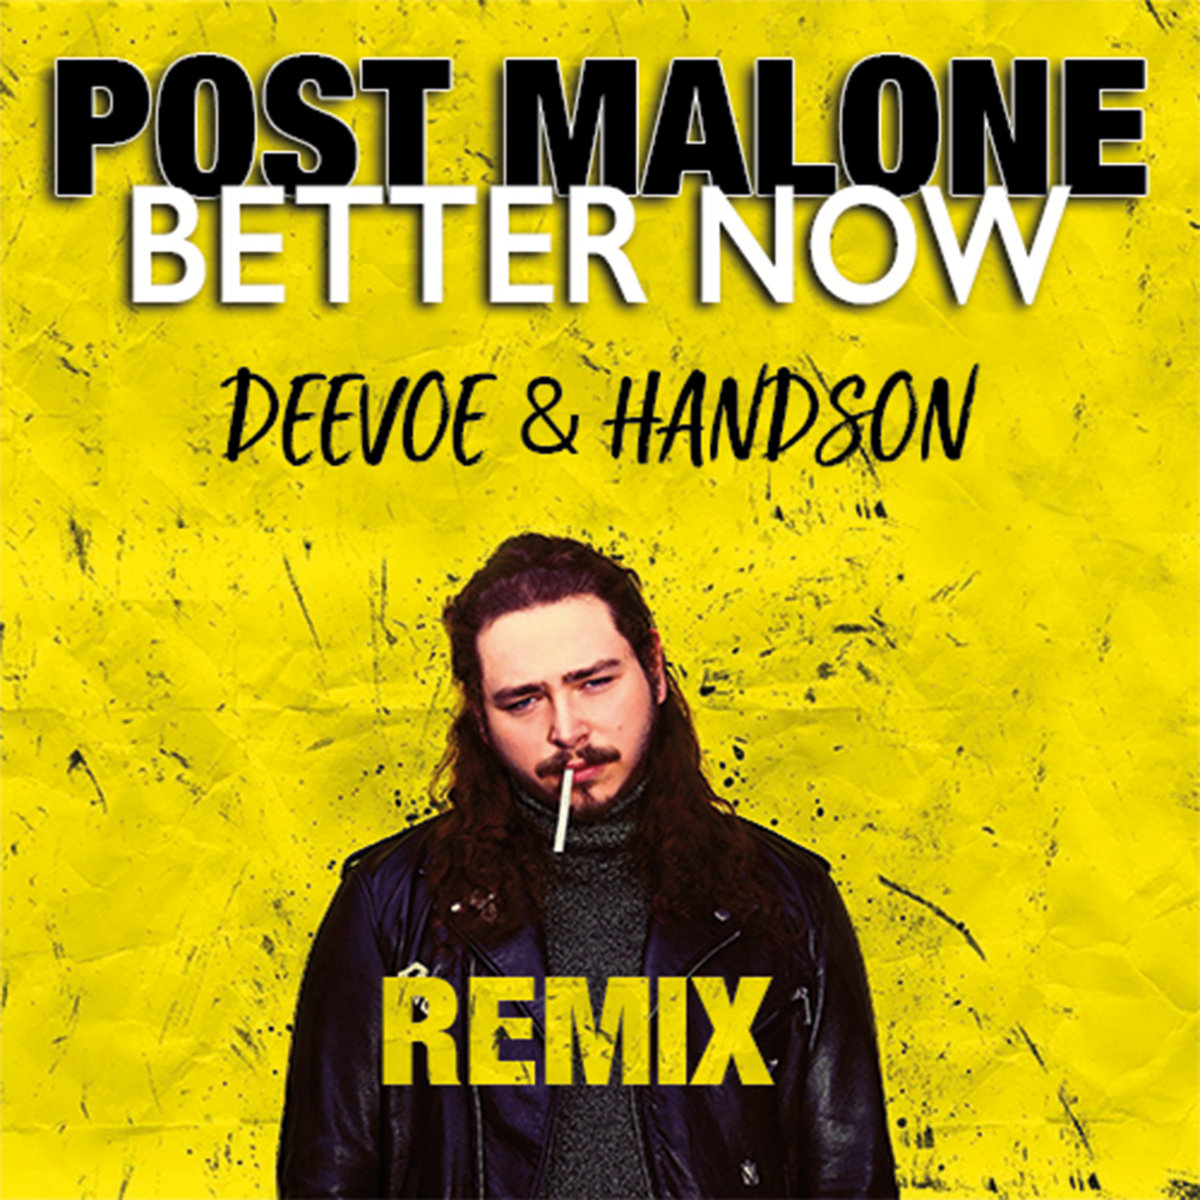 Download Better Now By Post Malone: Post Malone - Better Now (DEEVOE & HANDSON Remix)